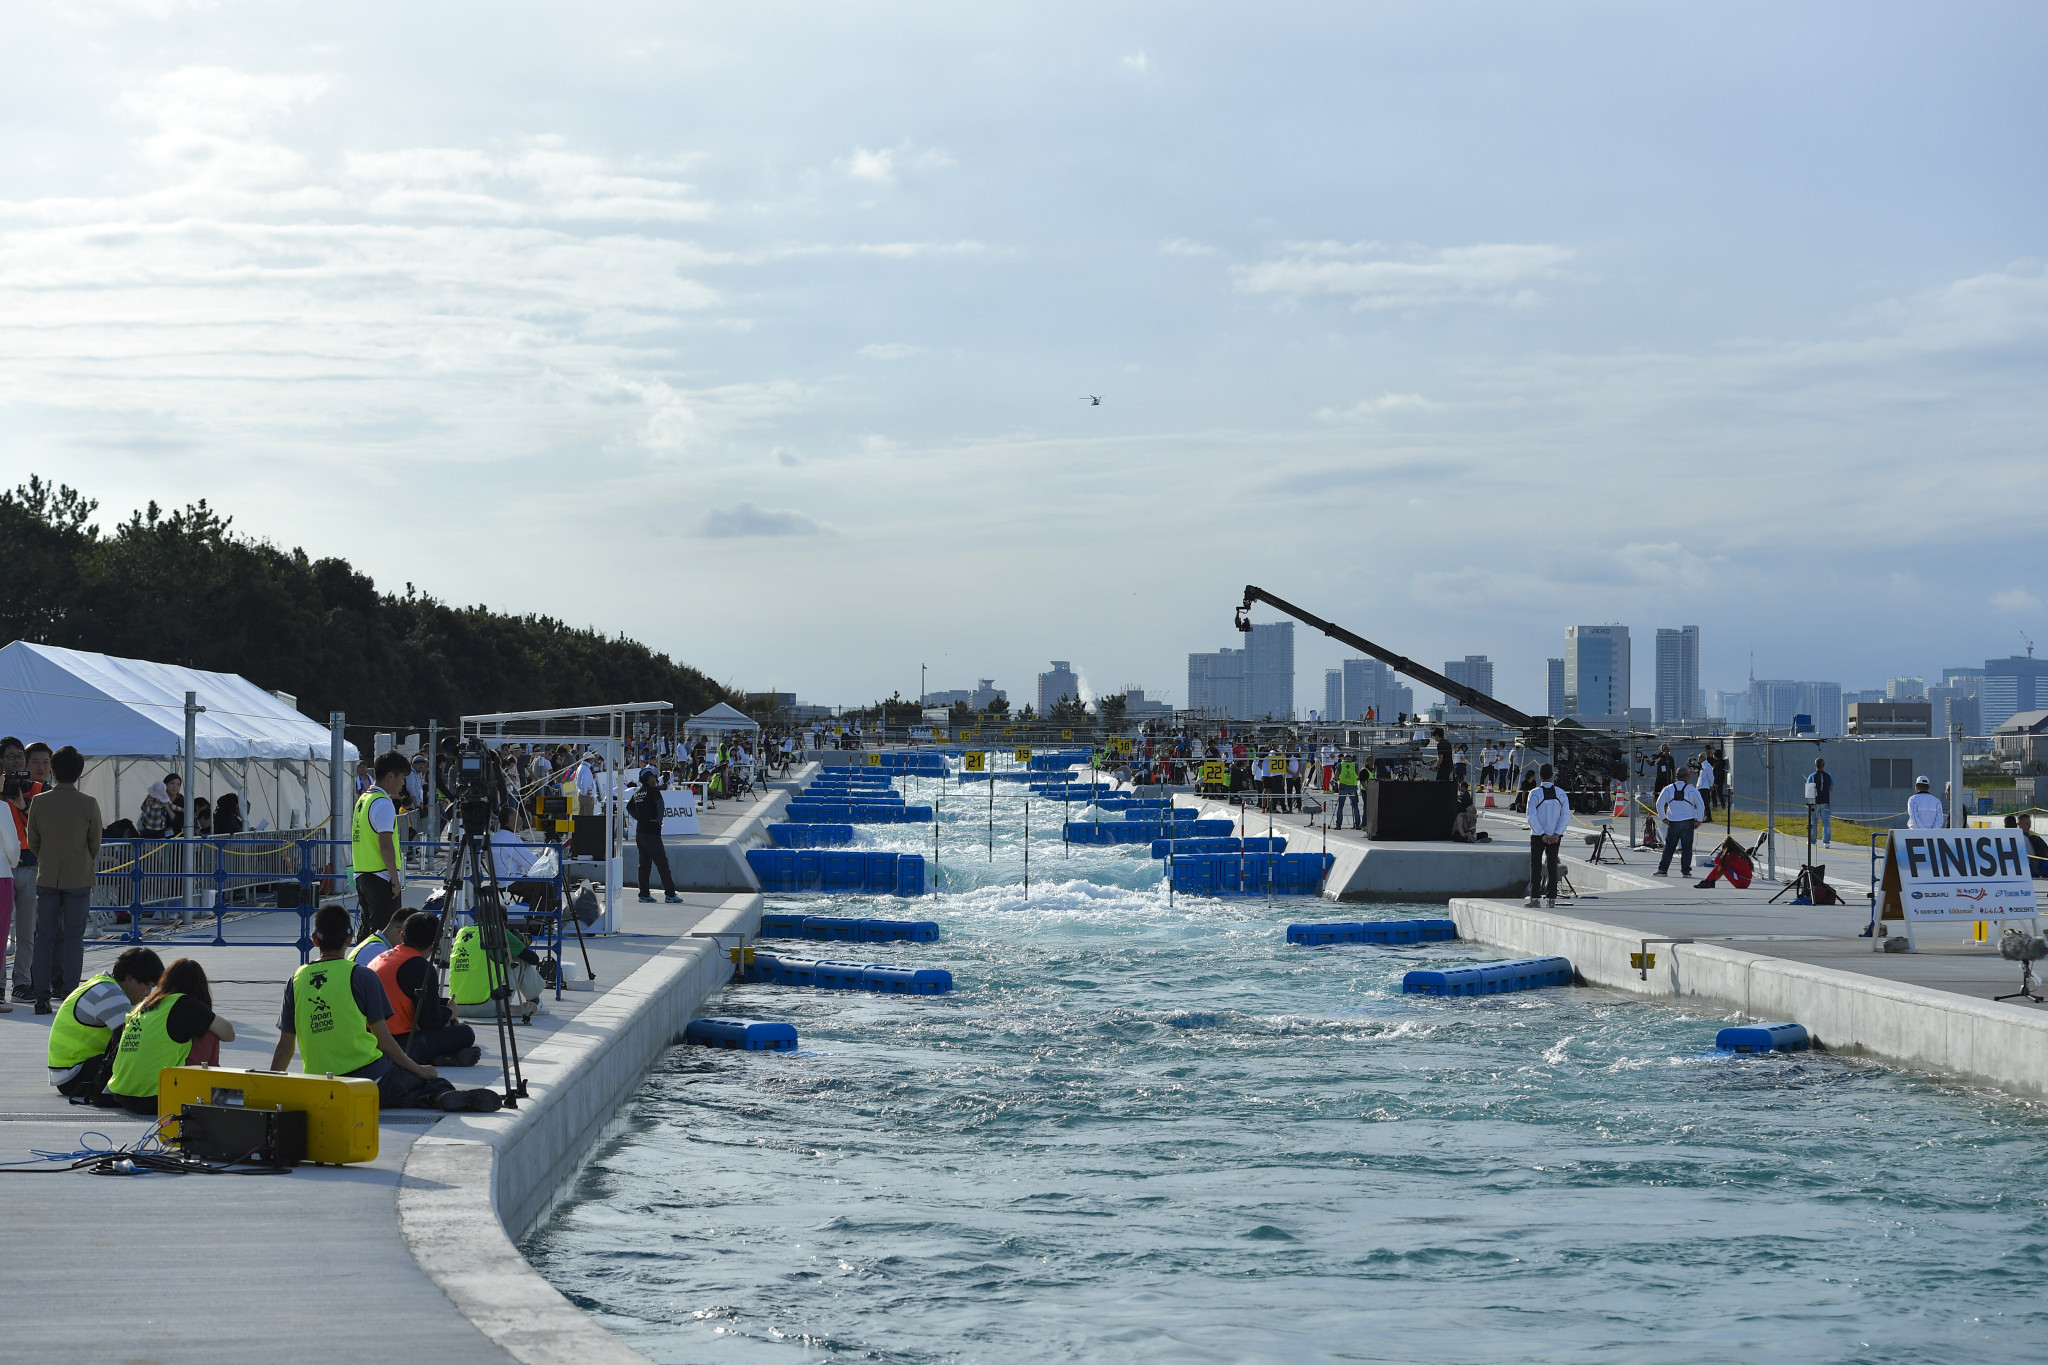 The Kasai Canoe Slalom Centre is due to host Tokyo 2020 action from July 26 to 31 ©Getty Images